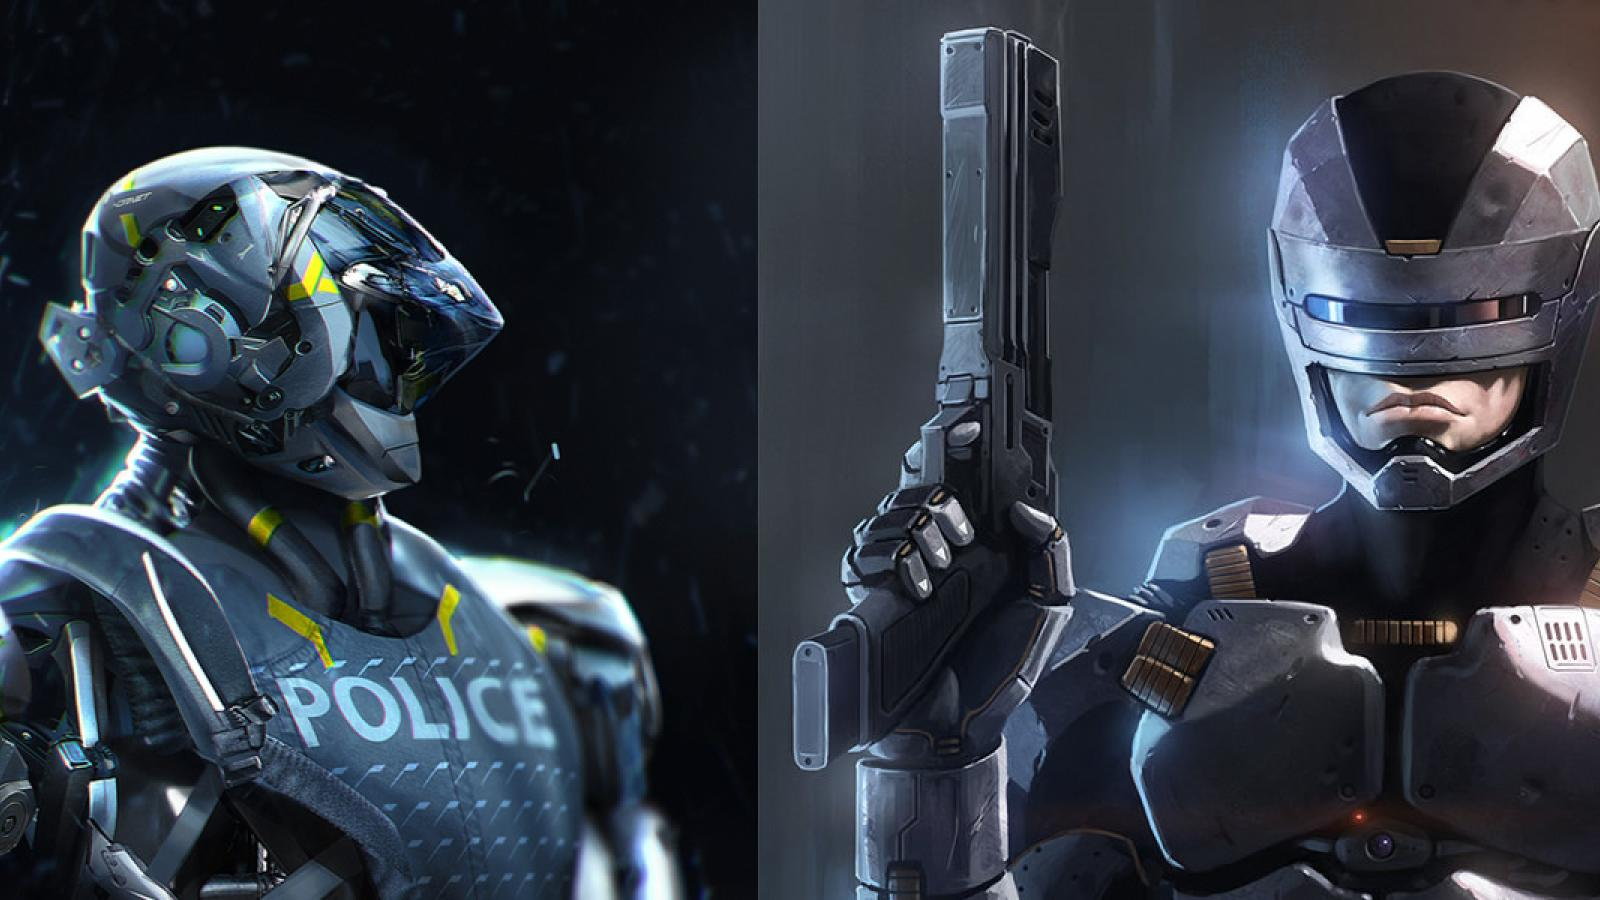 Robocop Redesign Illustrations